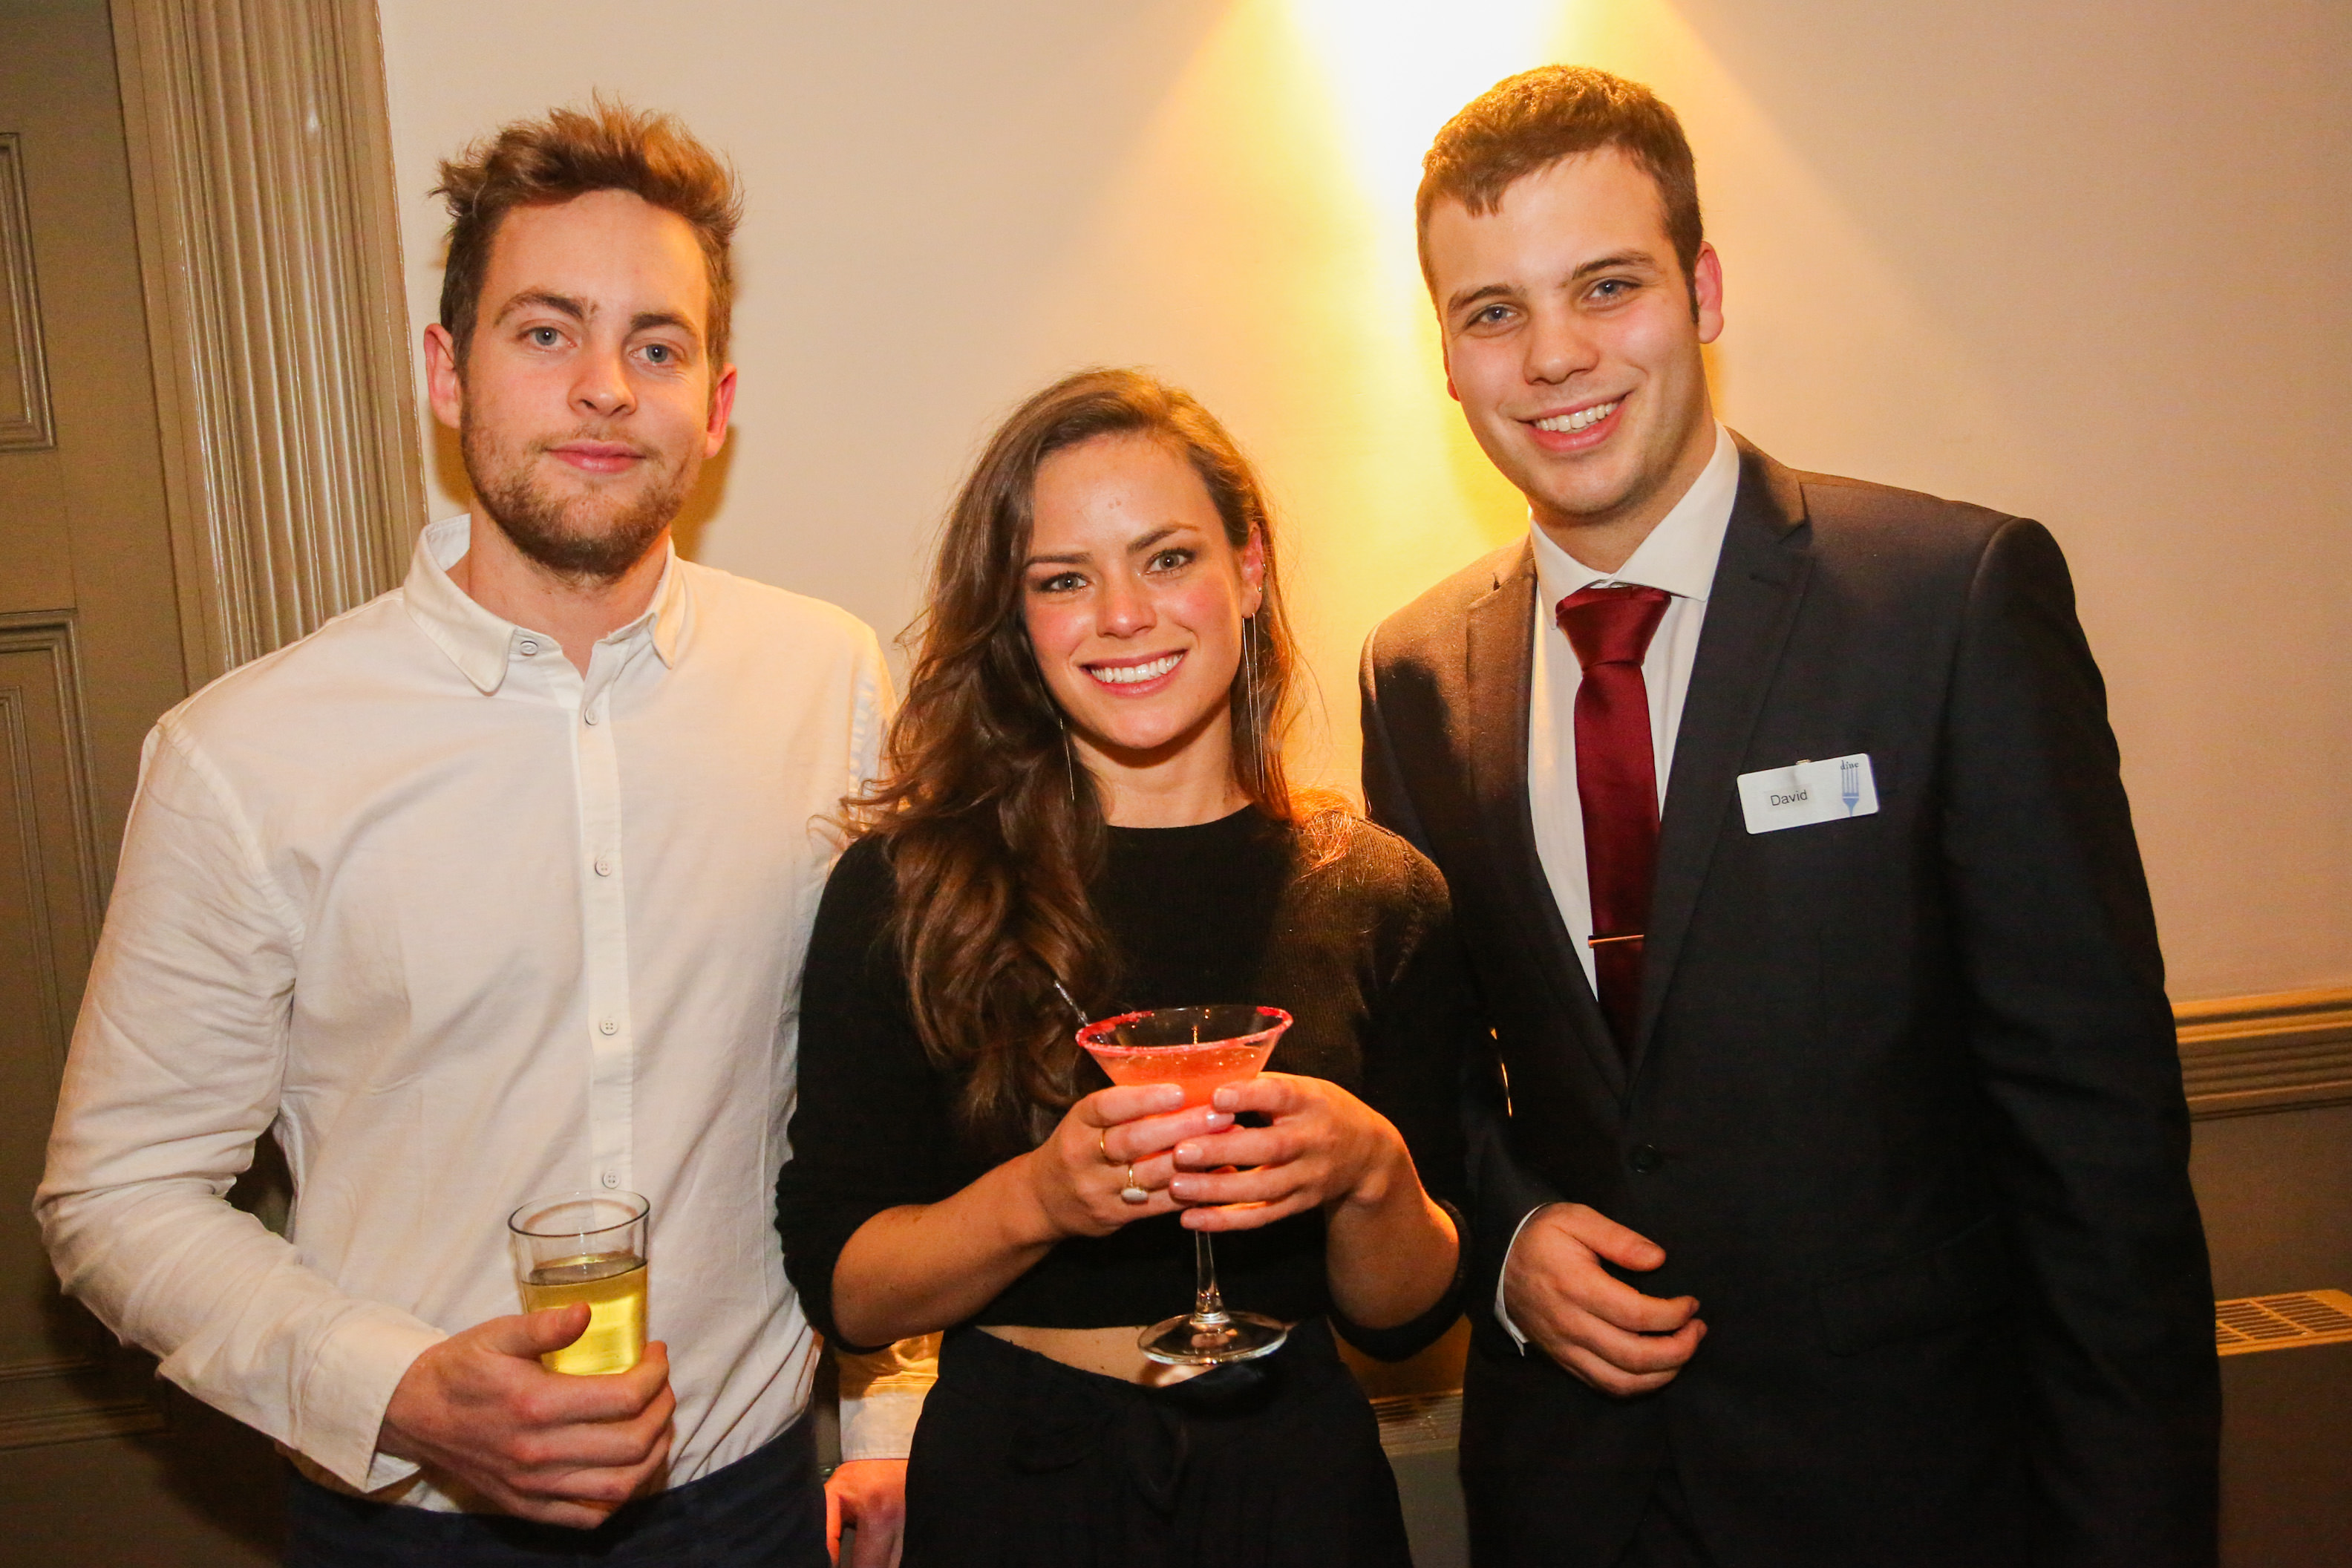 Tess from Right Angle Events with partner Tom and David from Dine